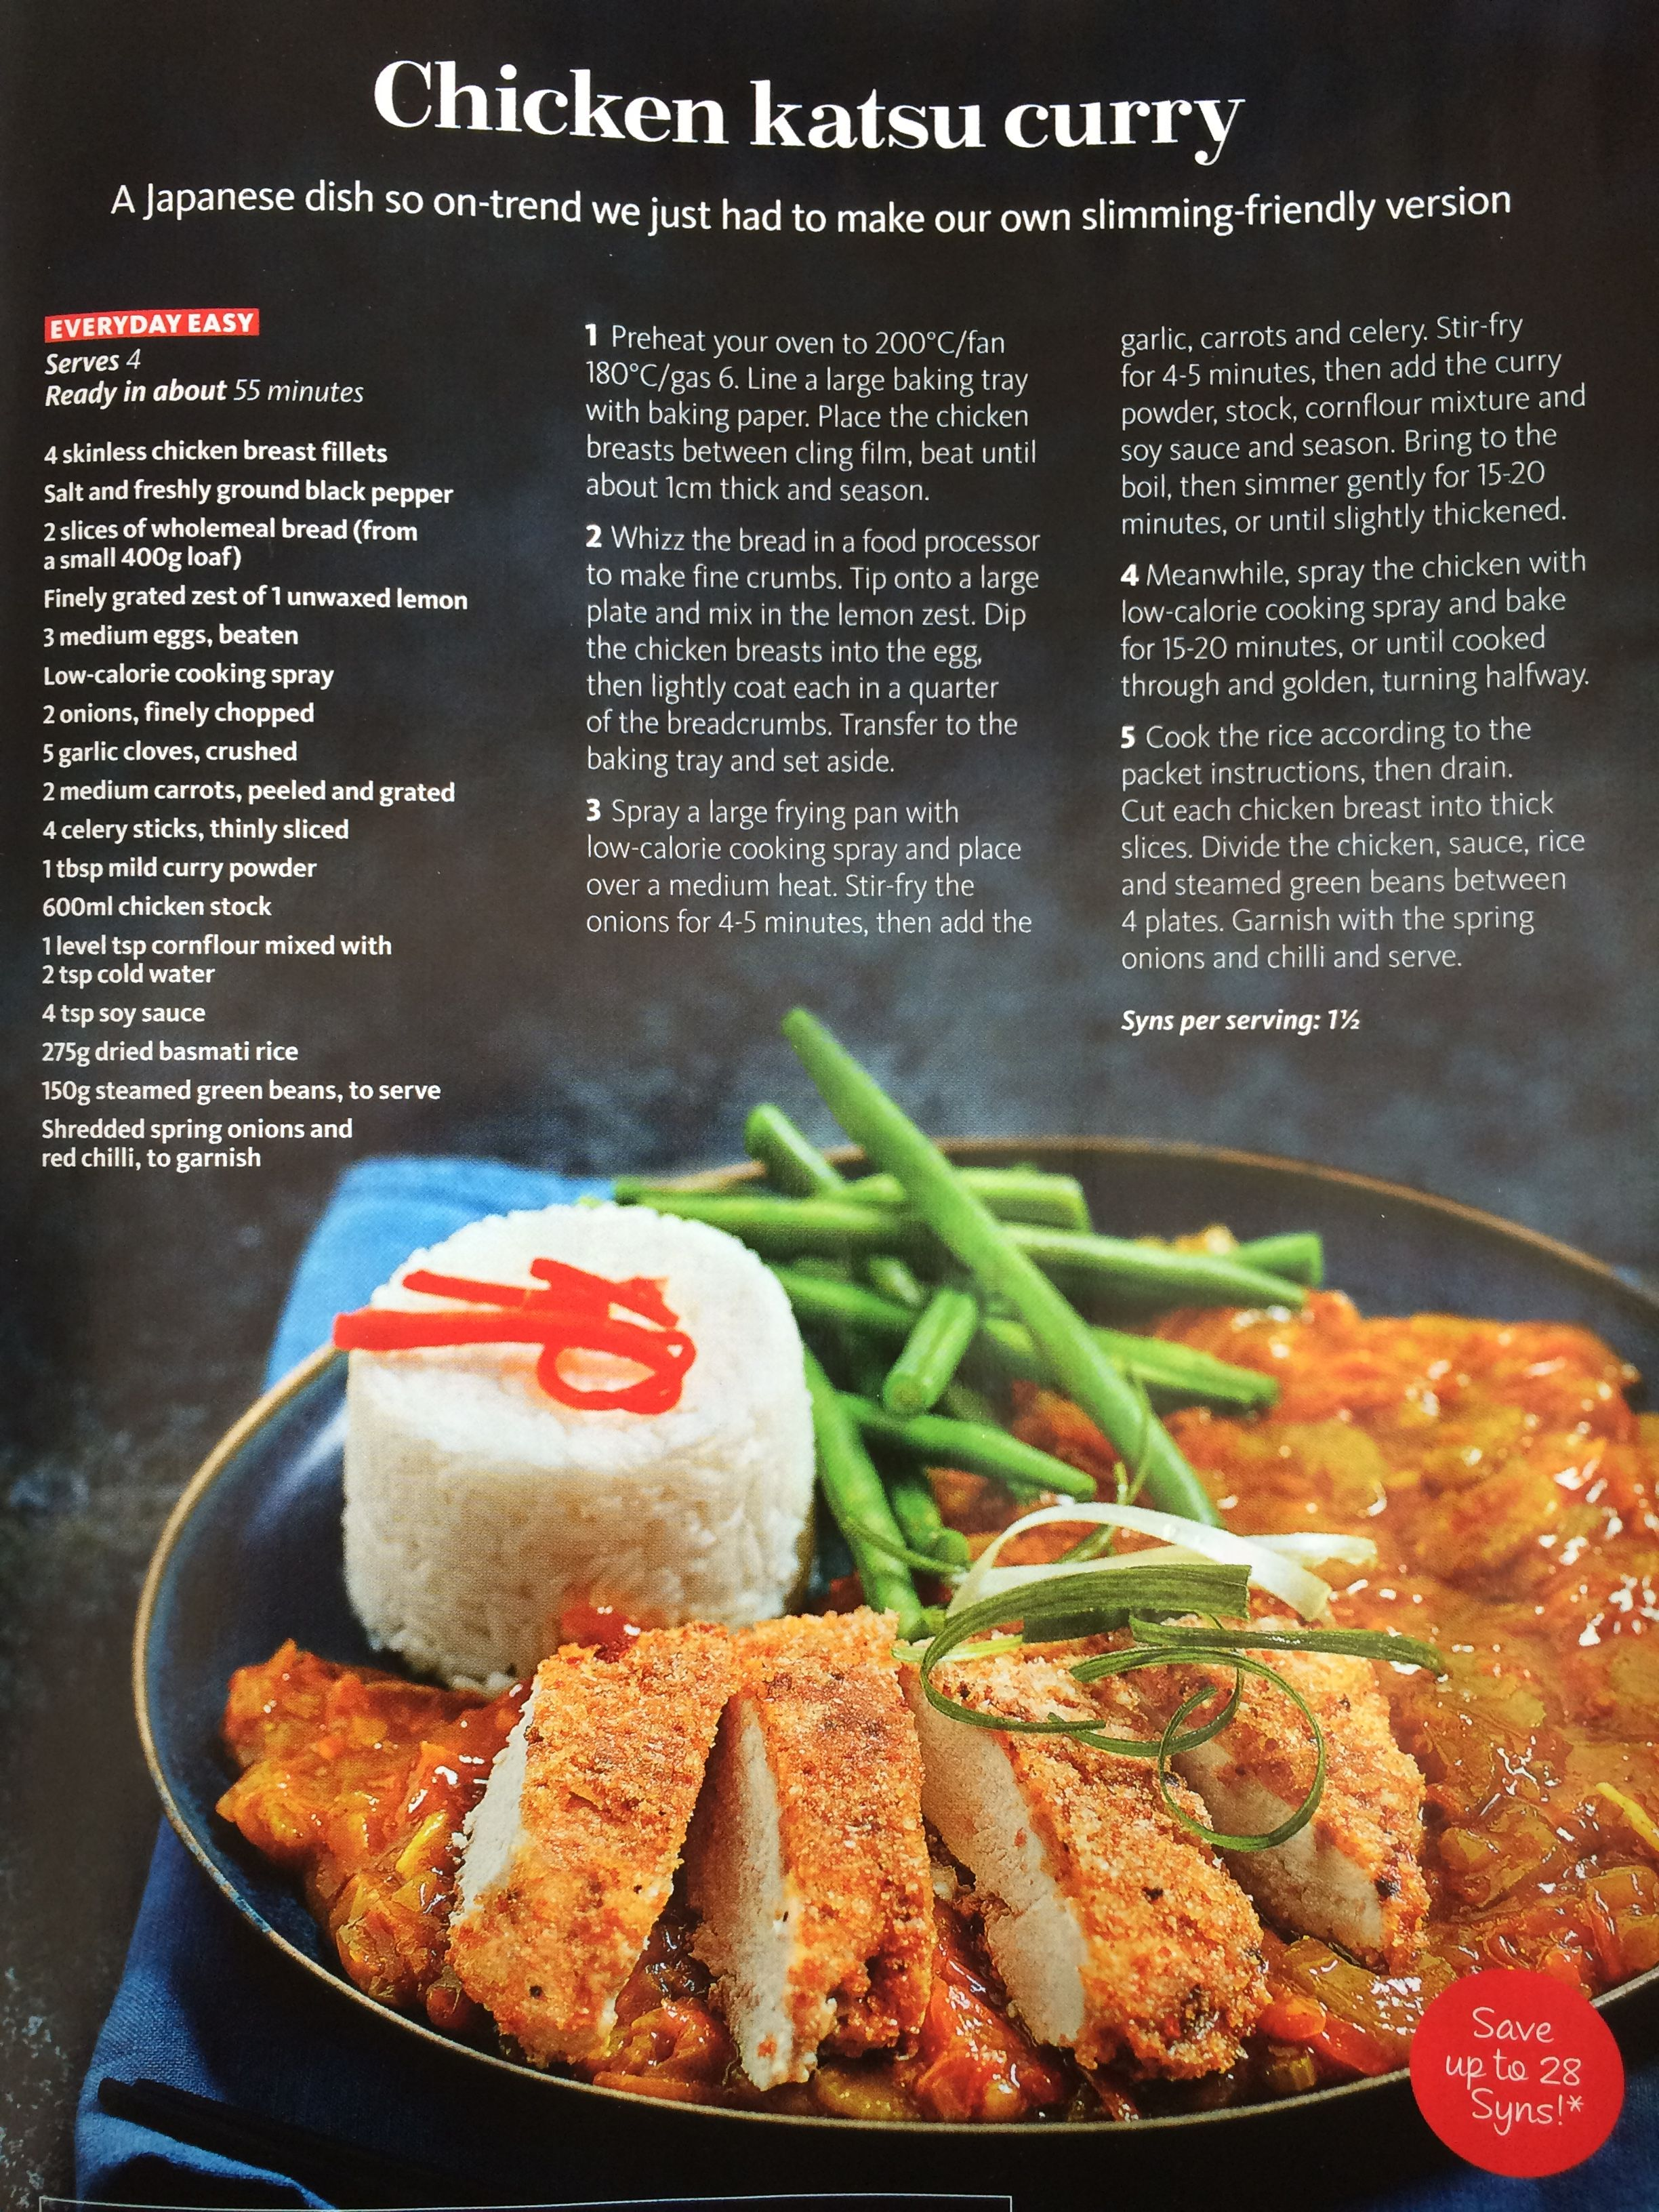 slimming world katsu curry 1 5syns per serving serves 4 world recipes slimming world recipes slimming world recipes syn free slimming world katsu curry 1 5syns